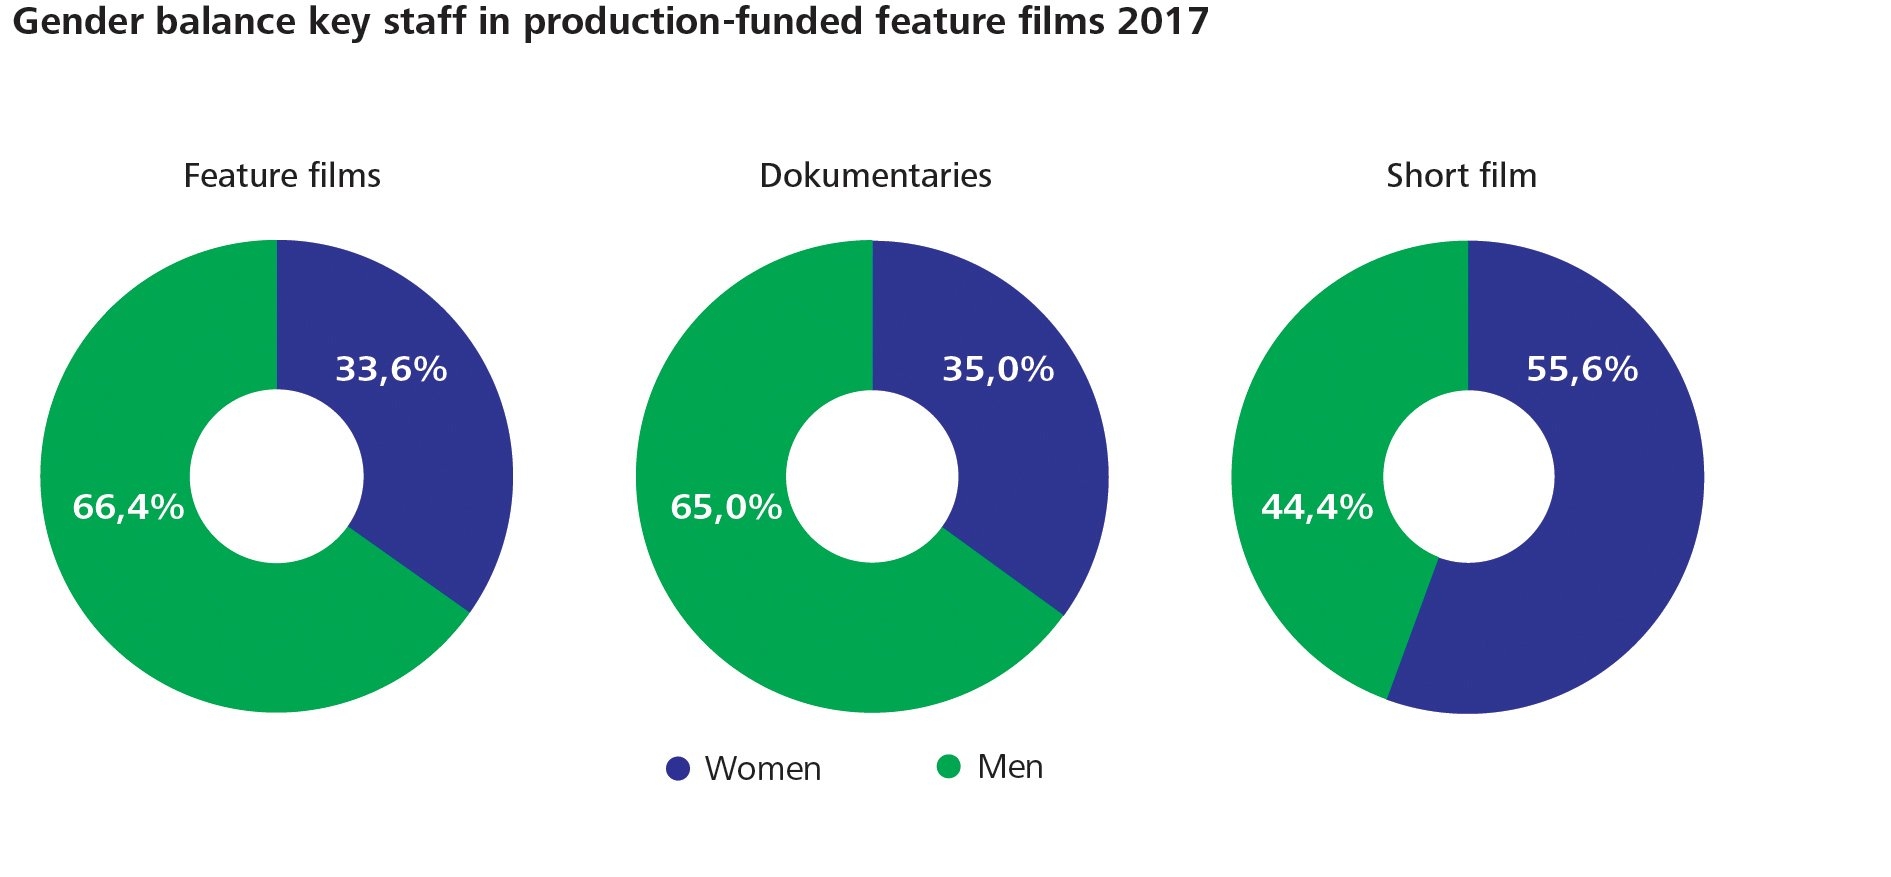 Figur 4  Gender balance key staff in production-funded feature films 2017